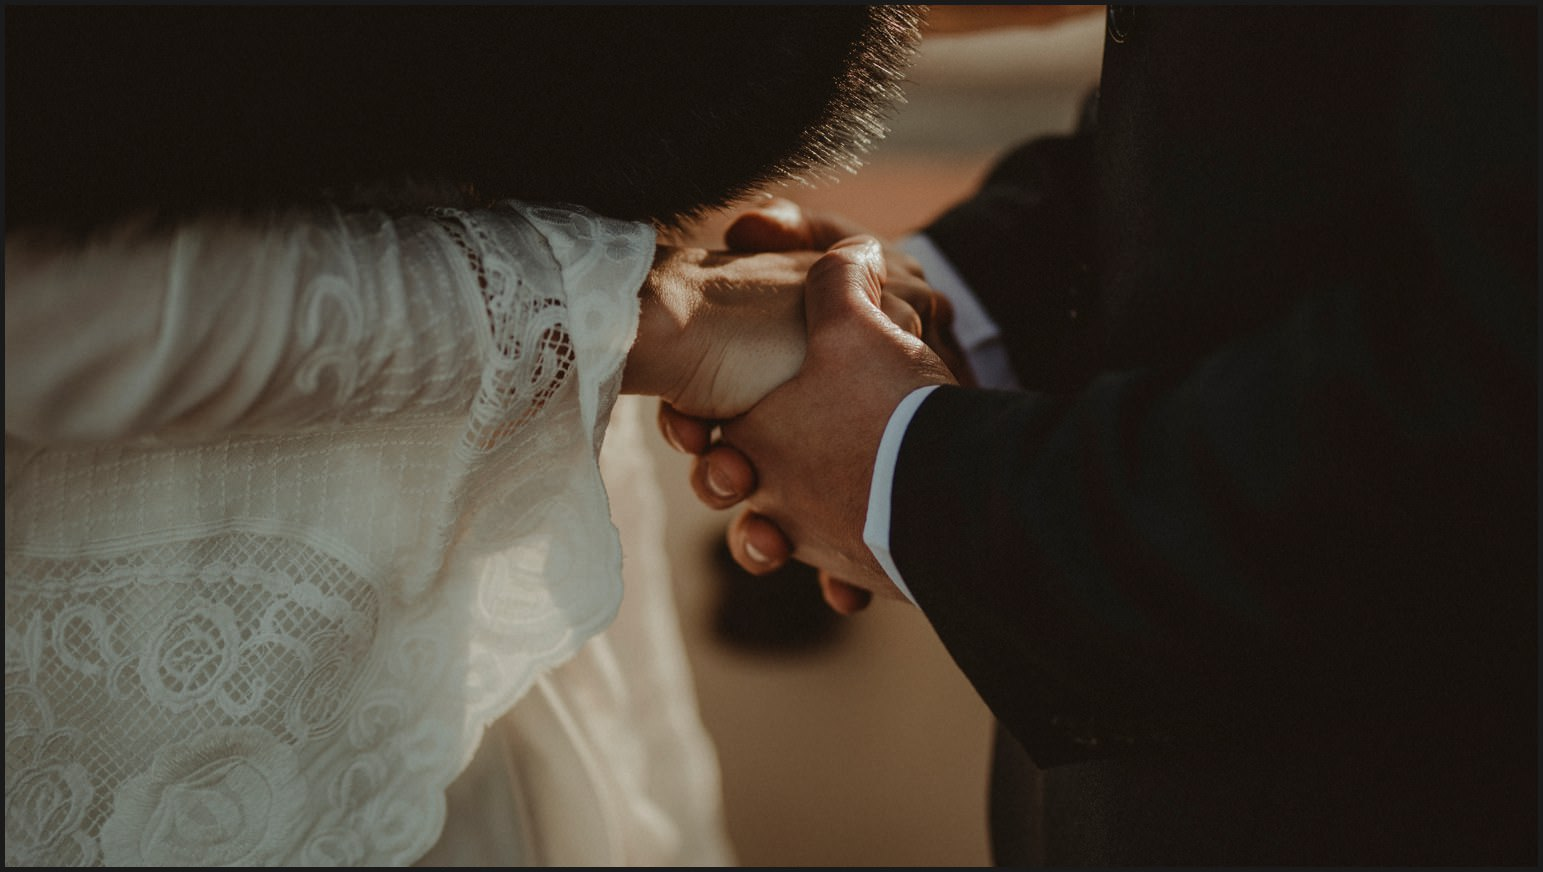 details, hands, bride, groom, elopement